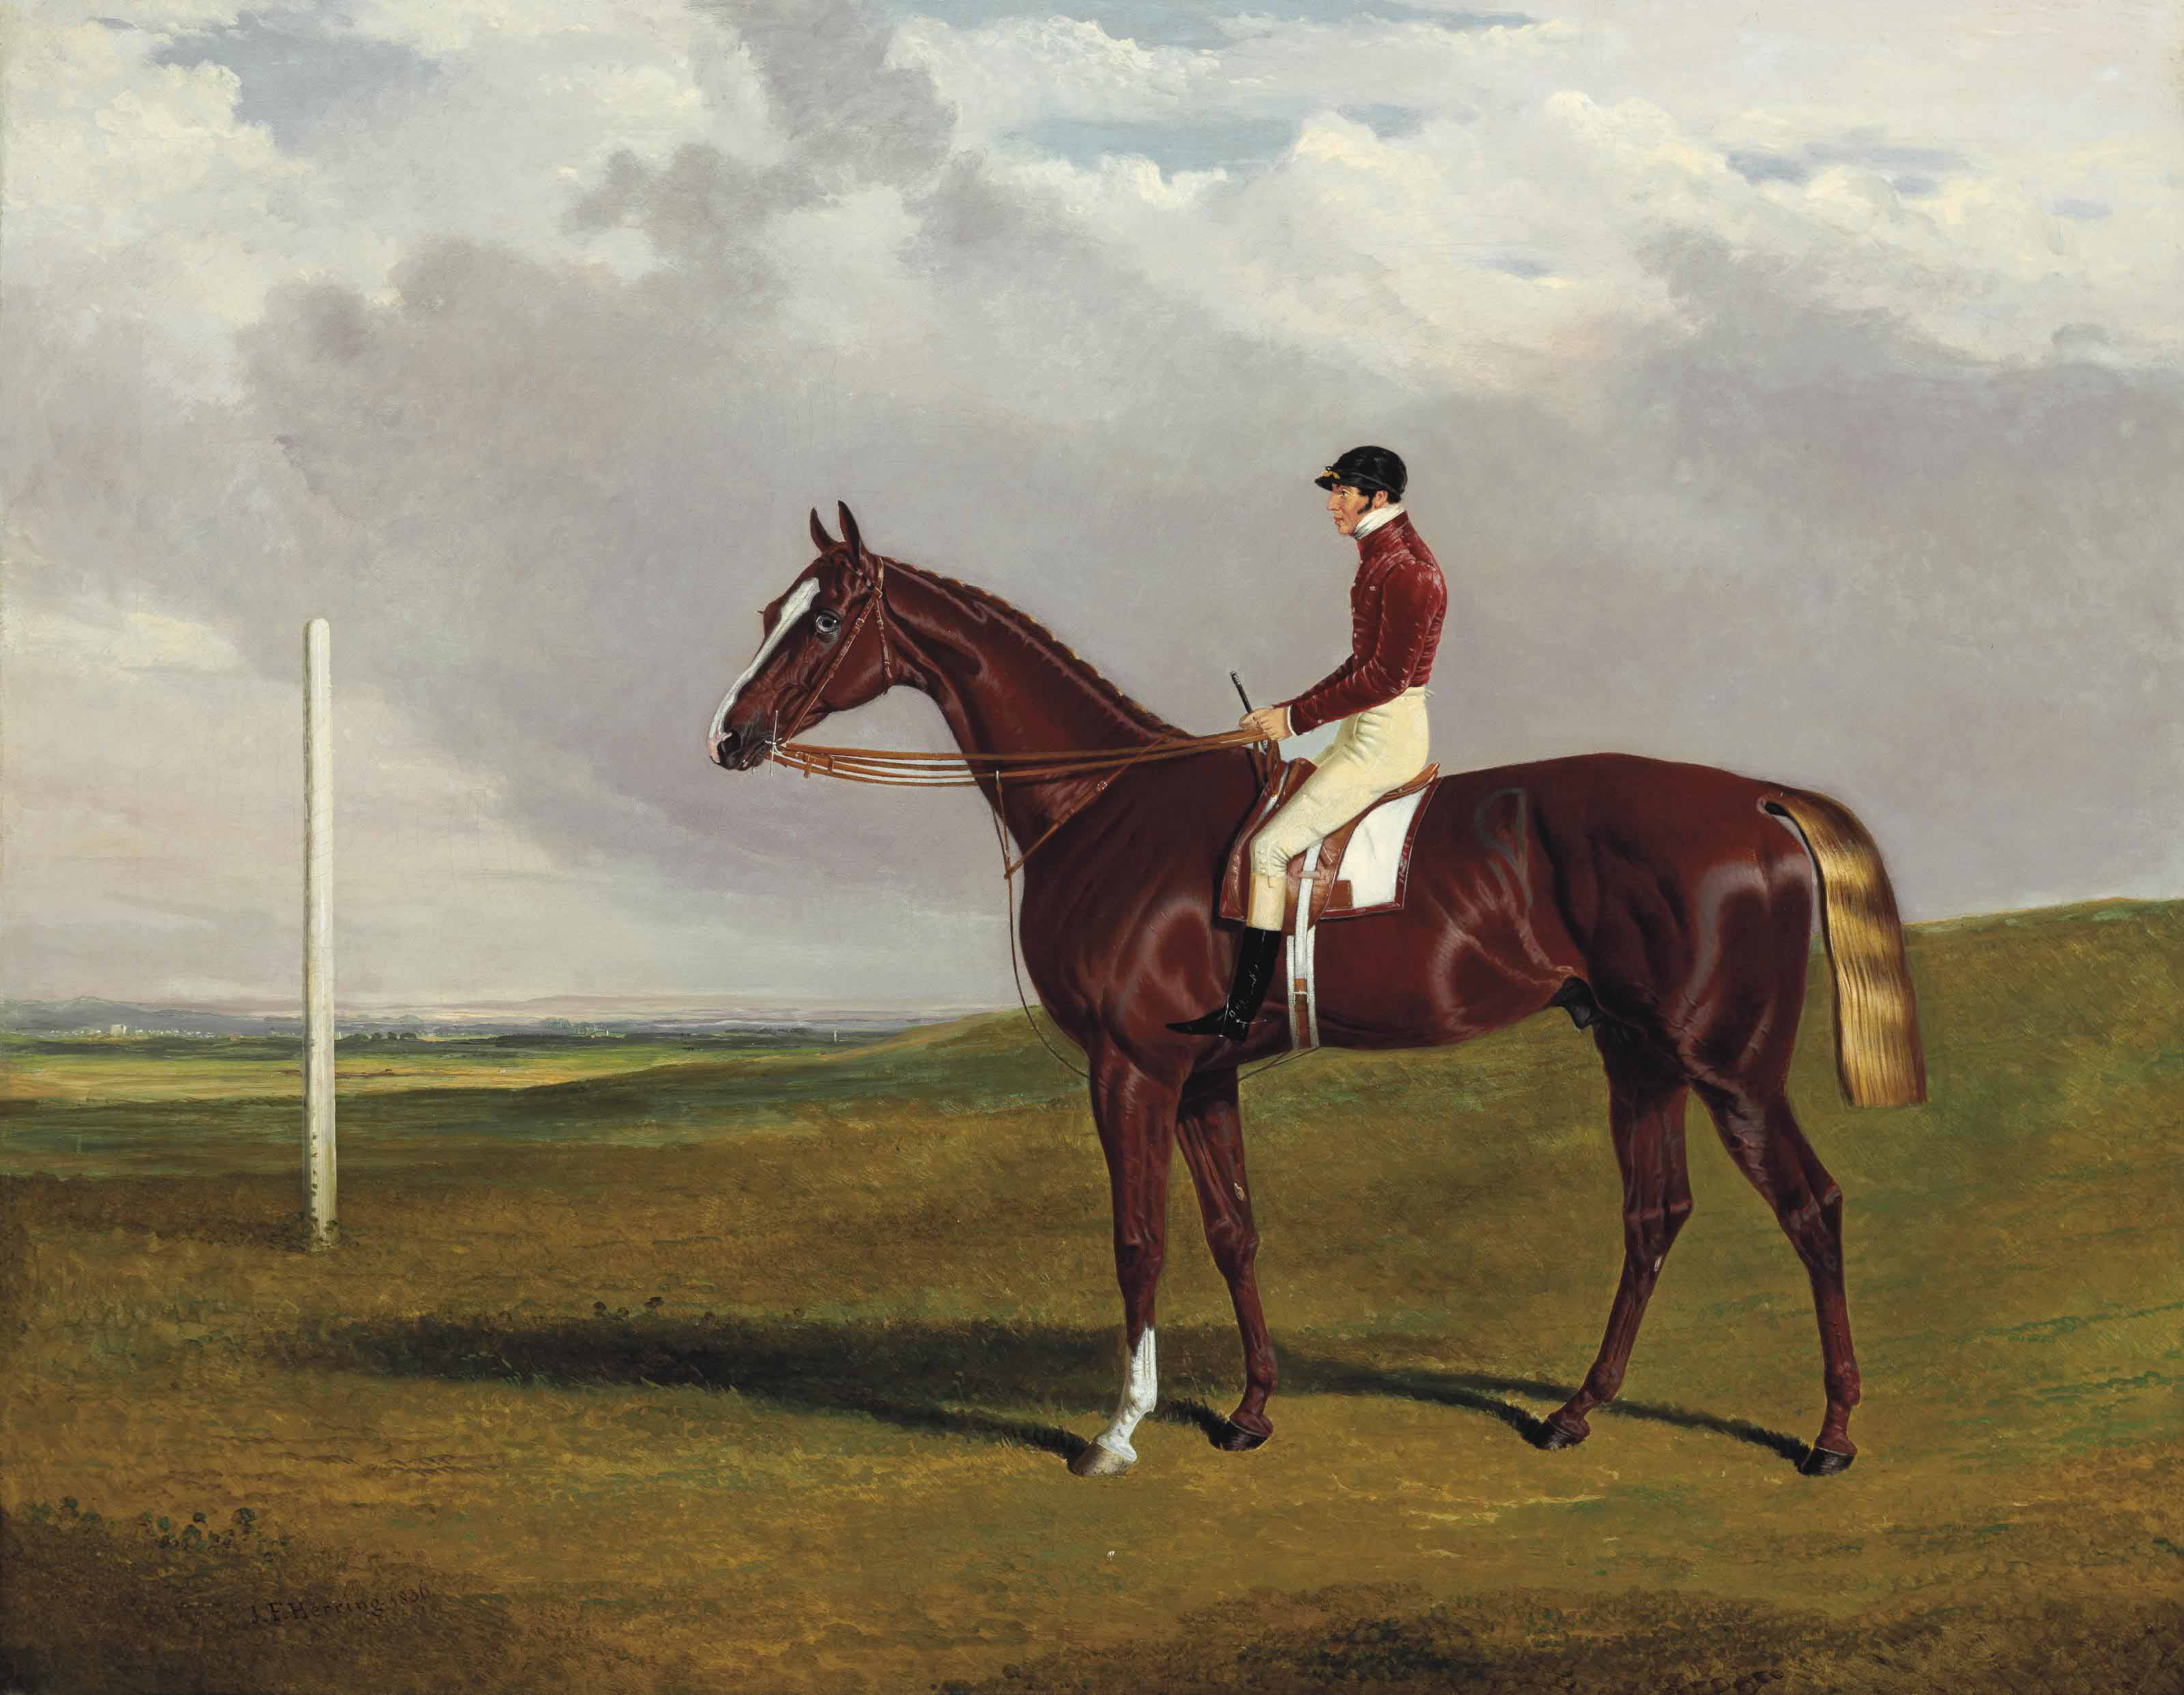 Hornsea, winner of the 1836 Goodwood Cup, with Bill Scott up